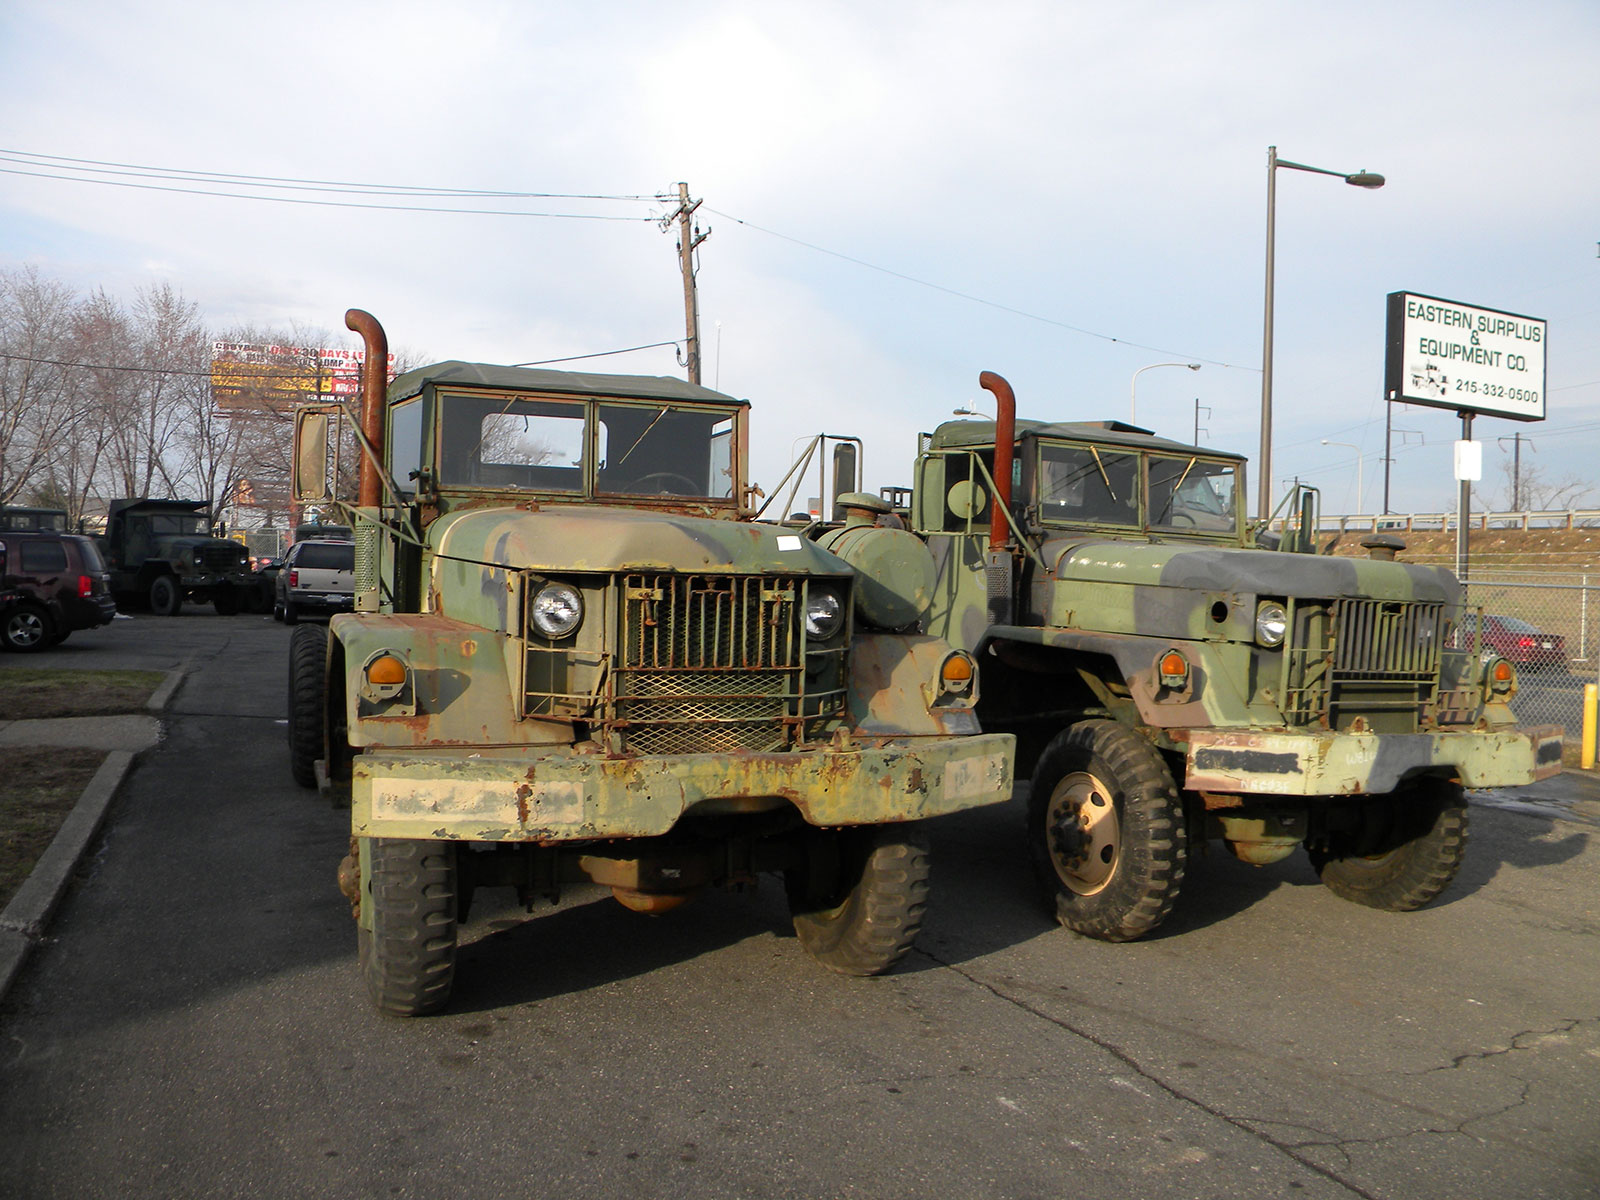 2 M809 trucks | Gallery | Eastern Surplus